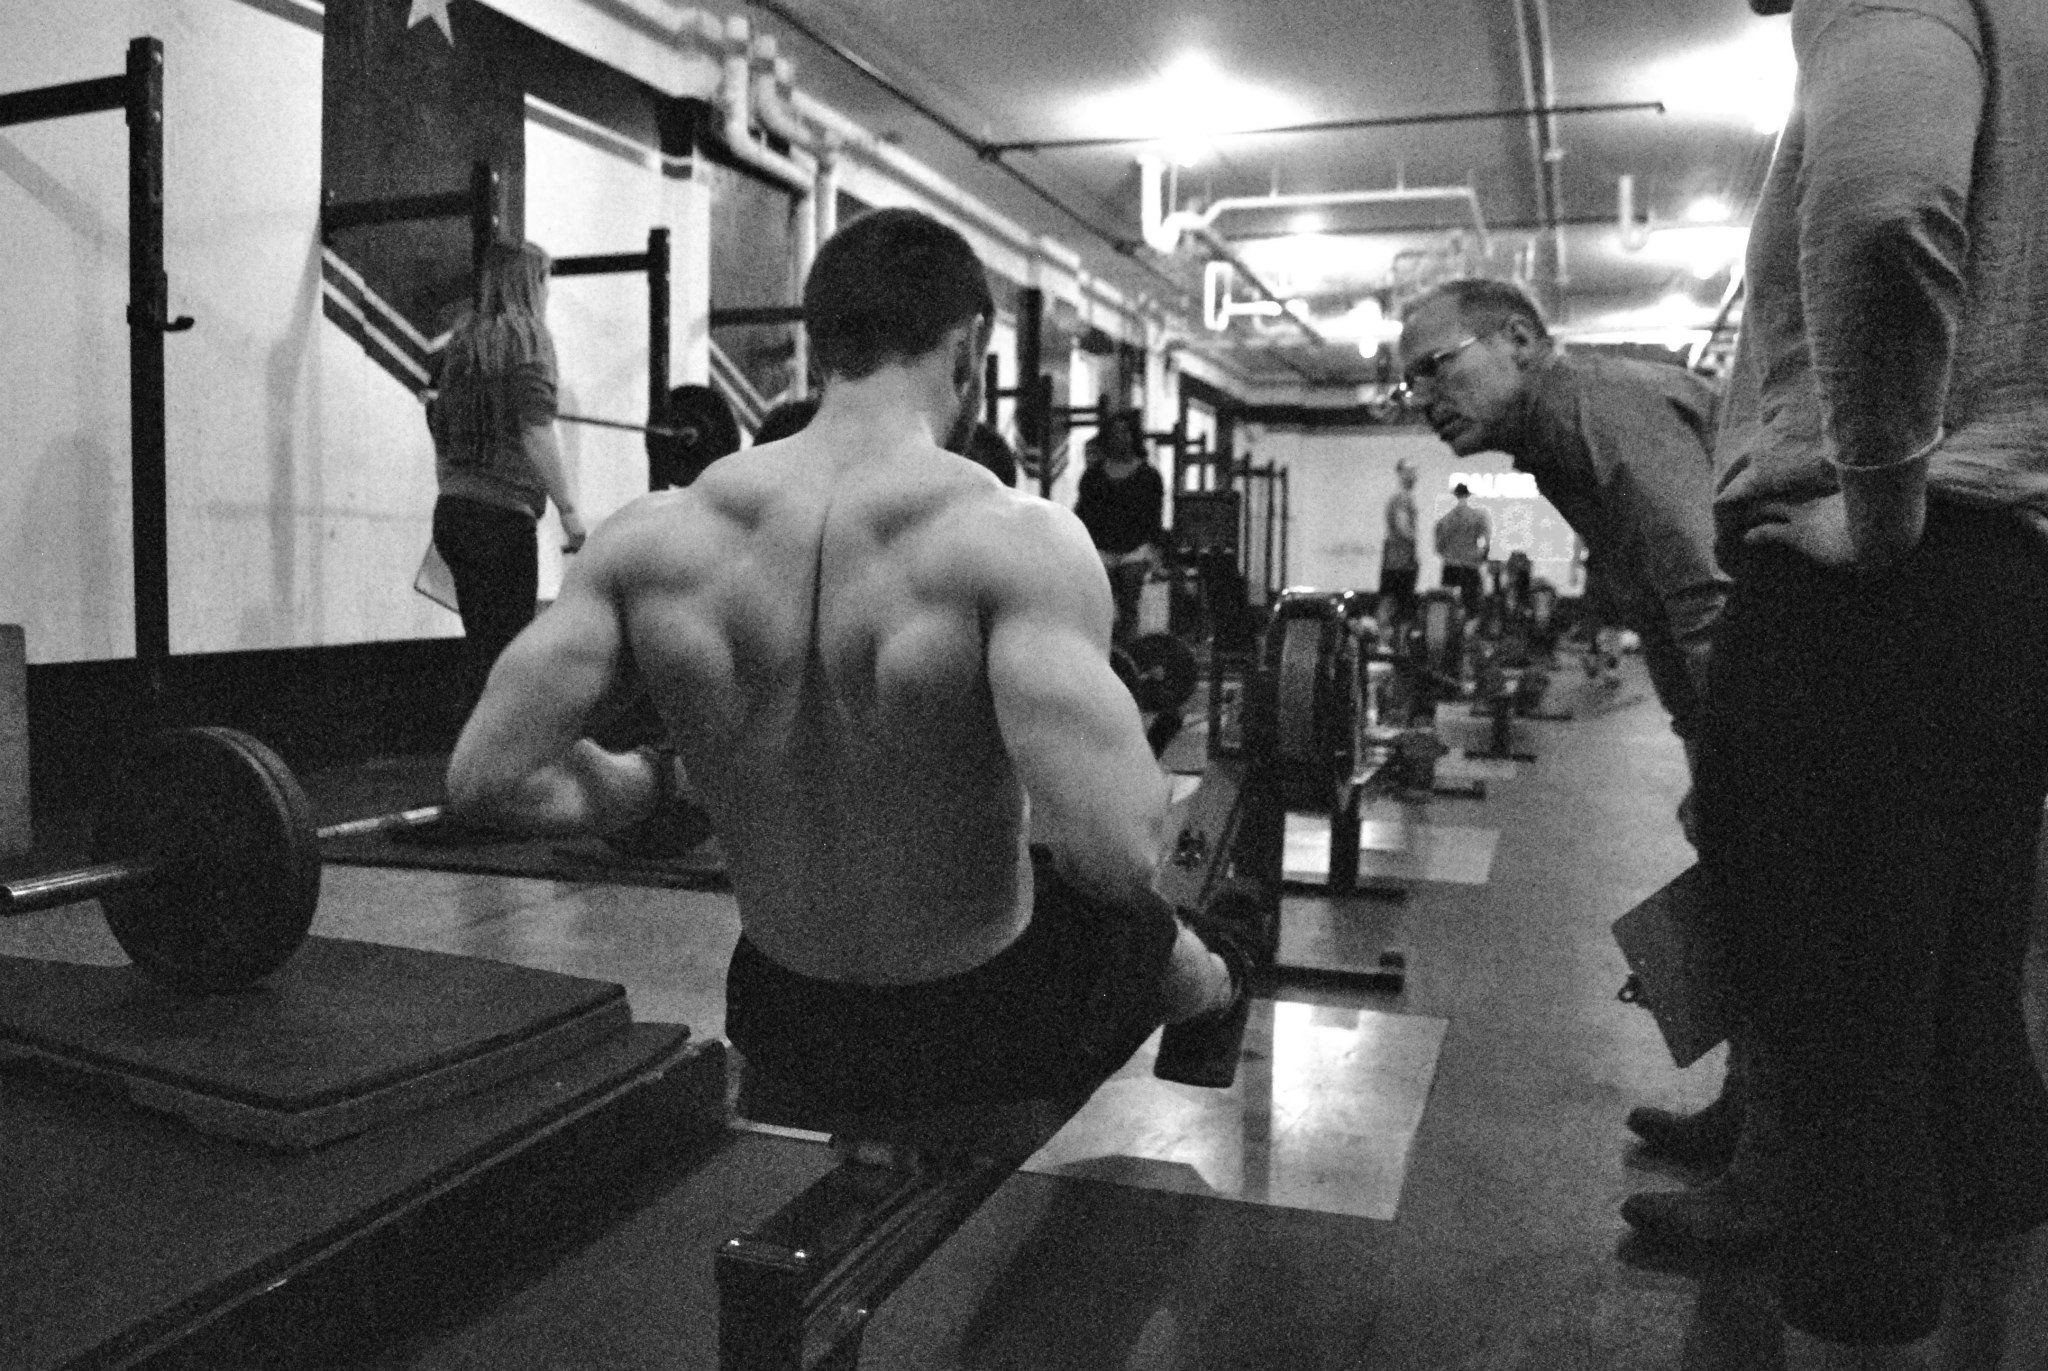 I suffered through the misery of 15.5 and all I got was this sweet photo of my upper back on the rower.